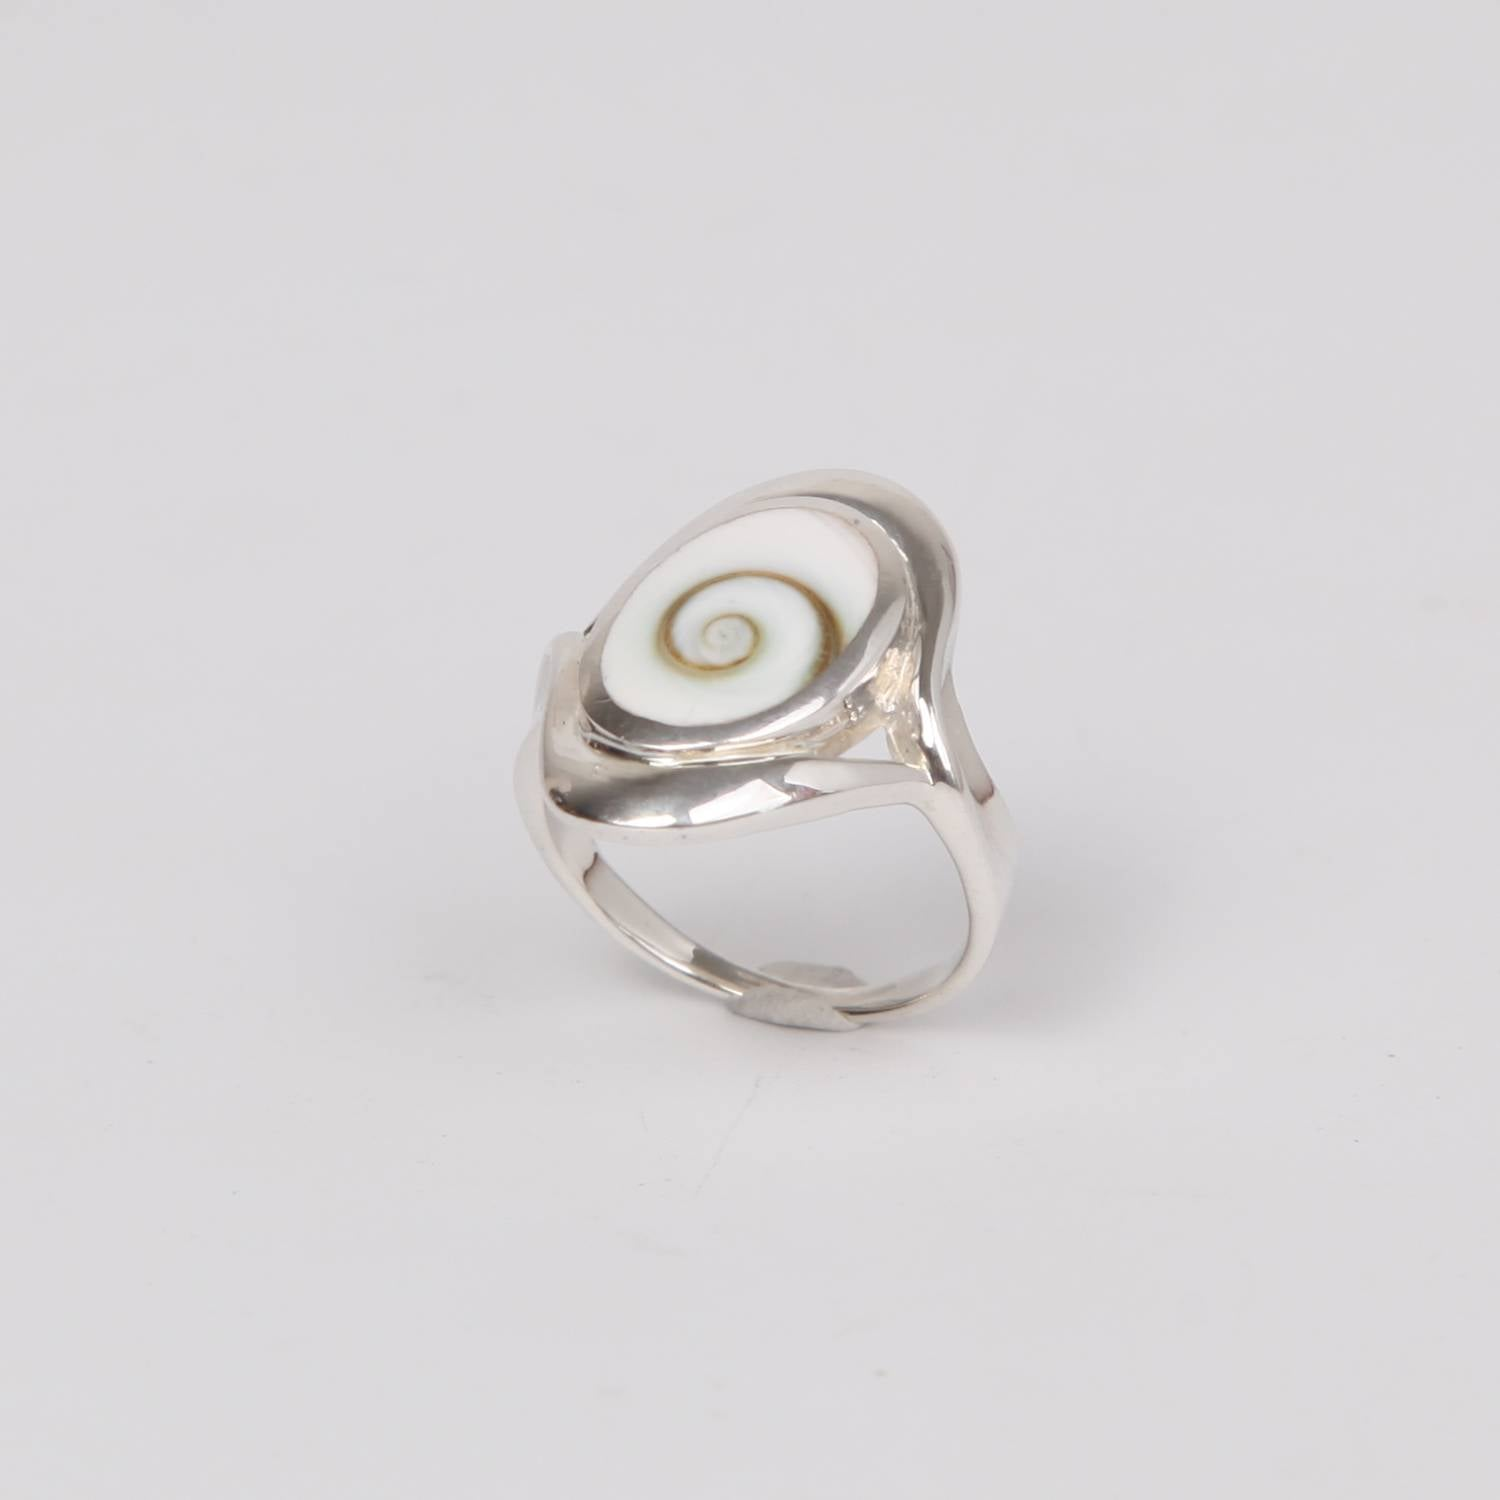 Oval Sterling Silver ring with Shiva Eye Shell